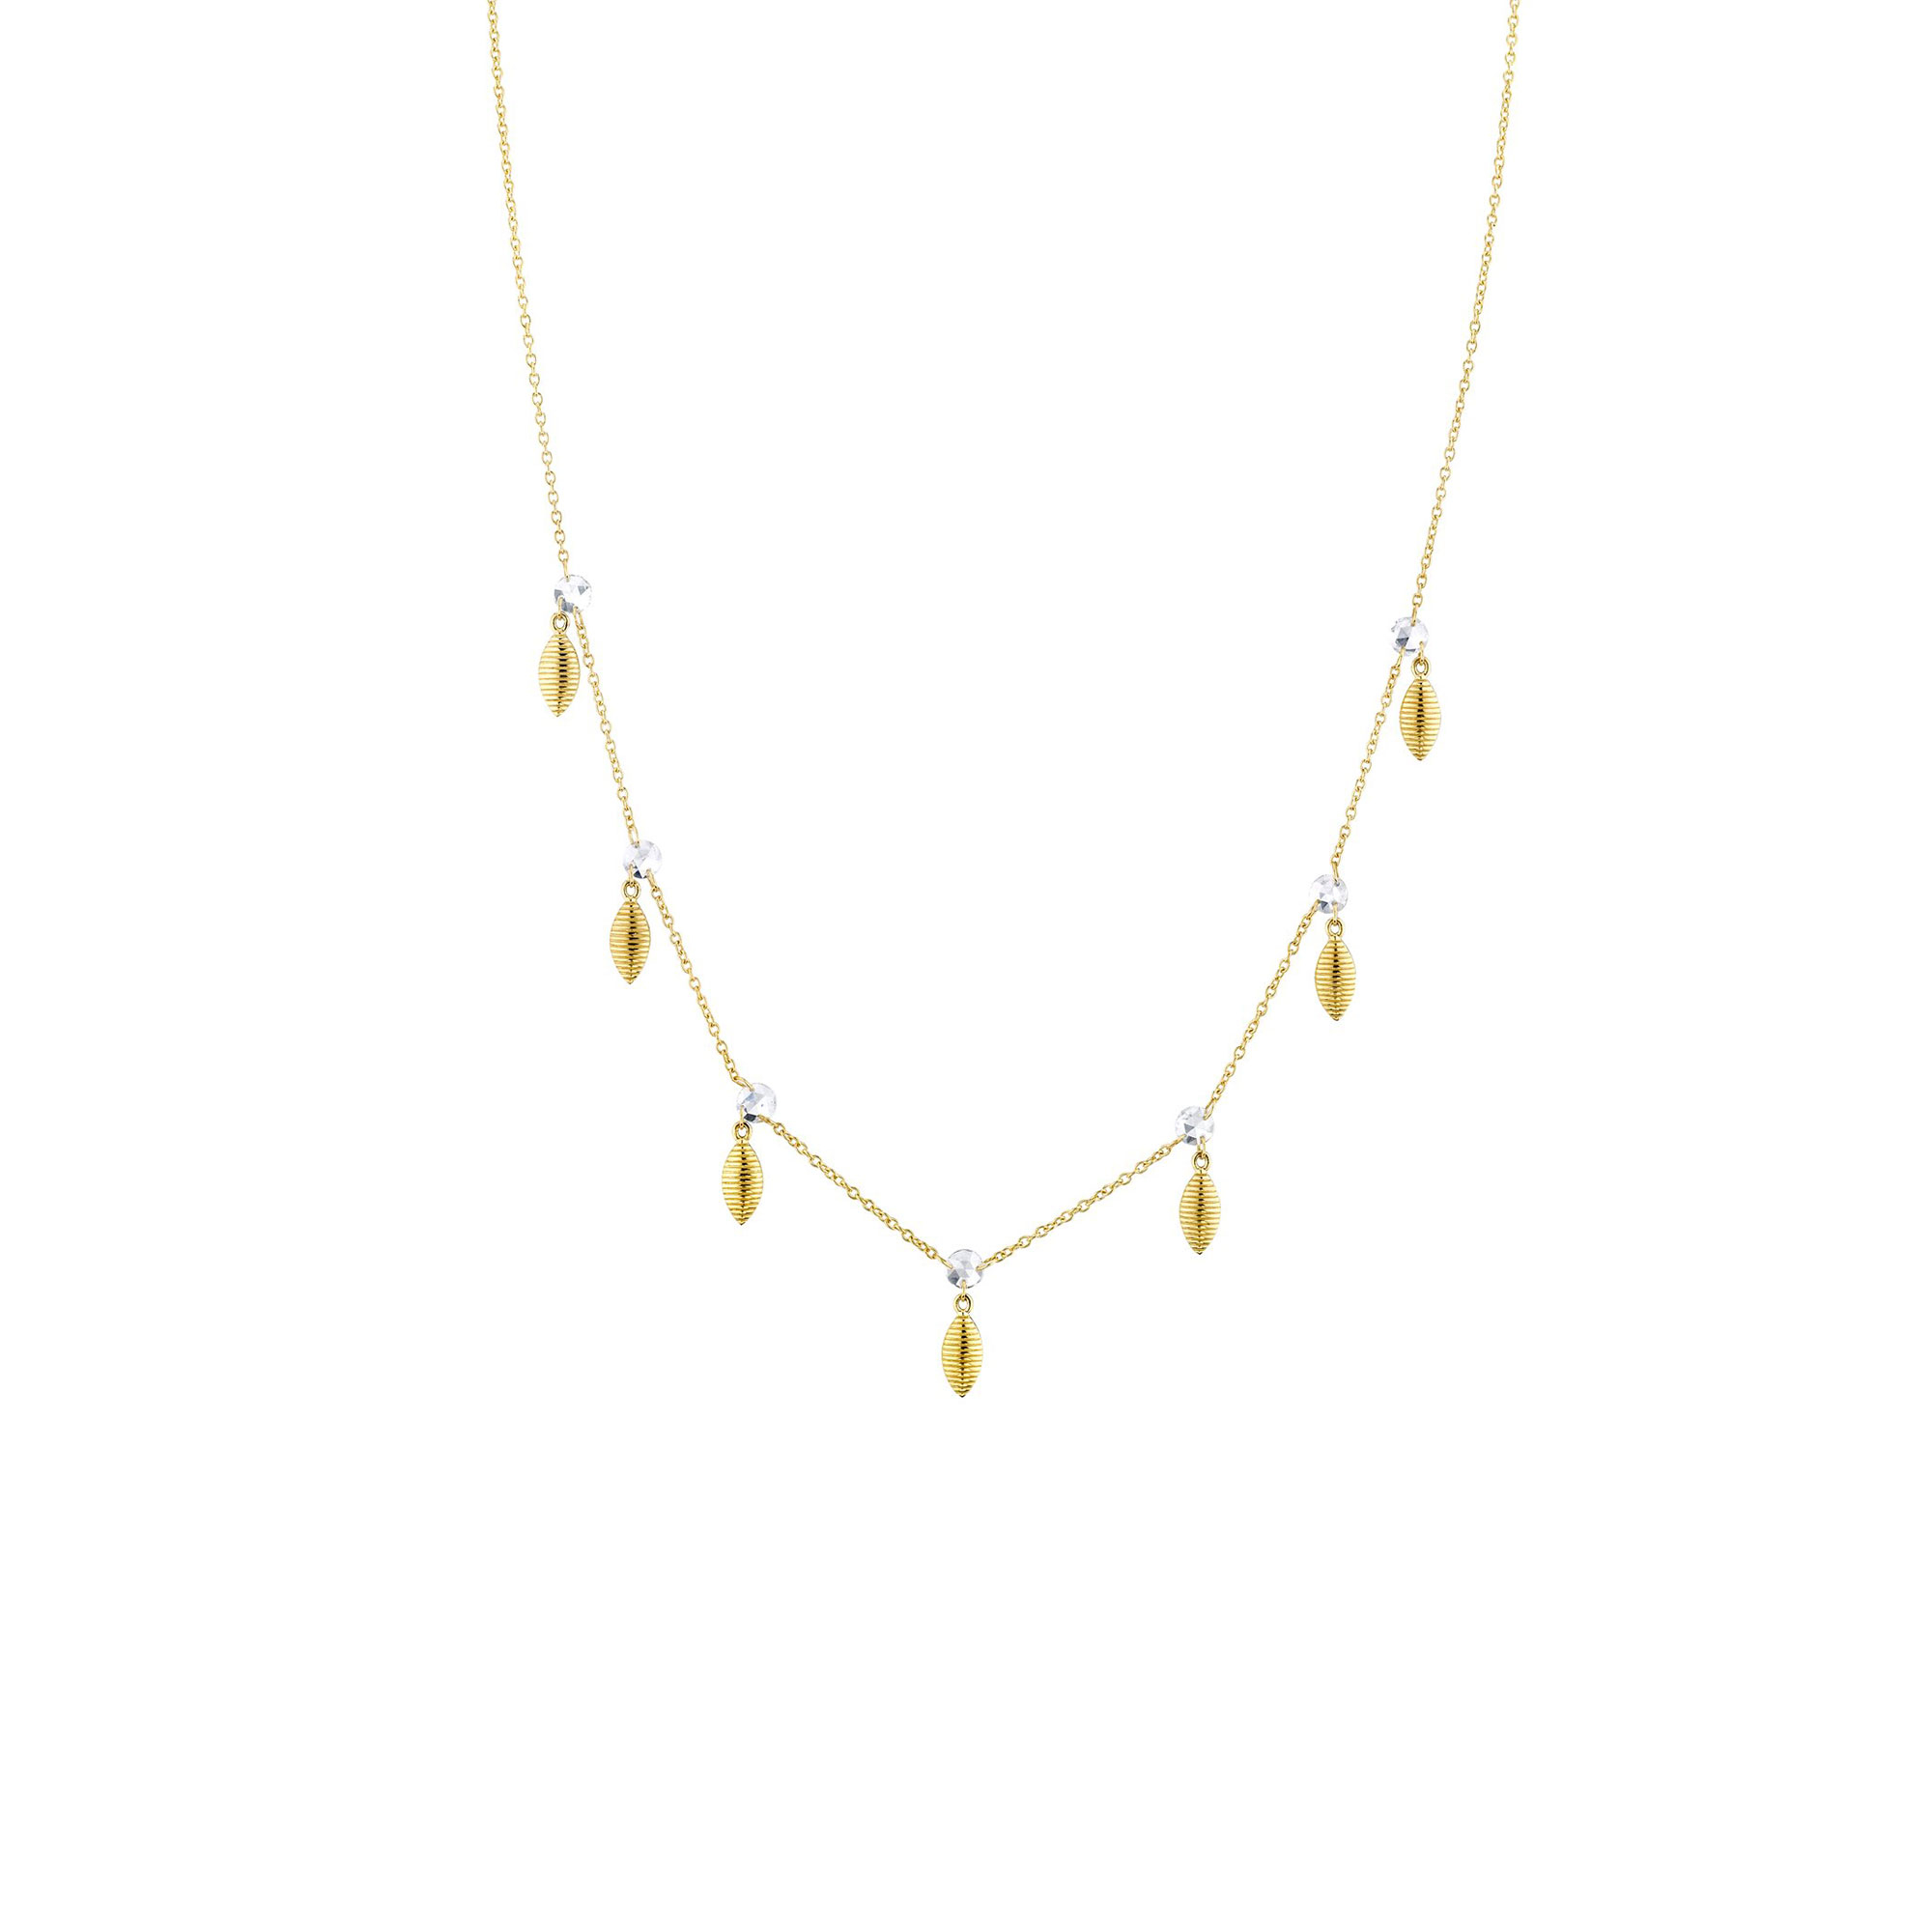 Sloane Street 18K Yellow Gold .70cts  Diamonds Gold Necklace with Stones CH014E-WD-Y